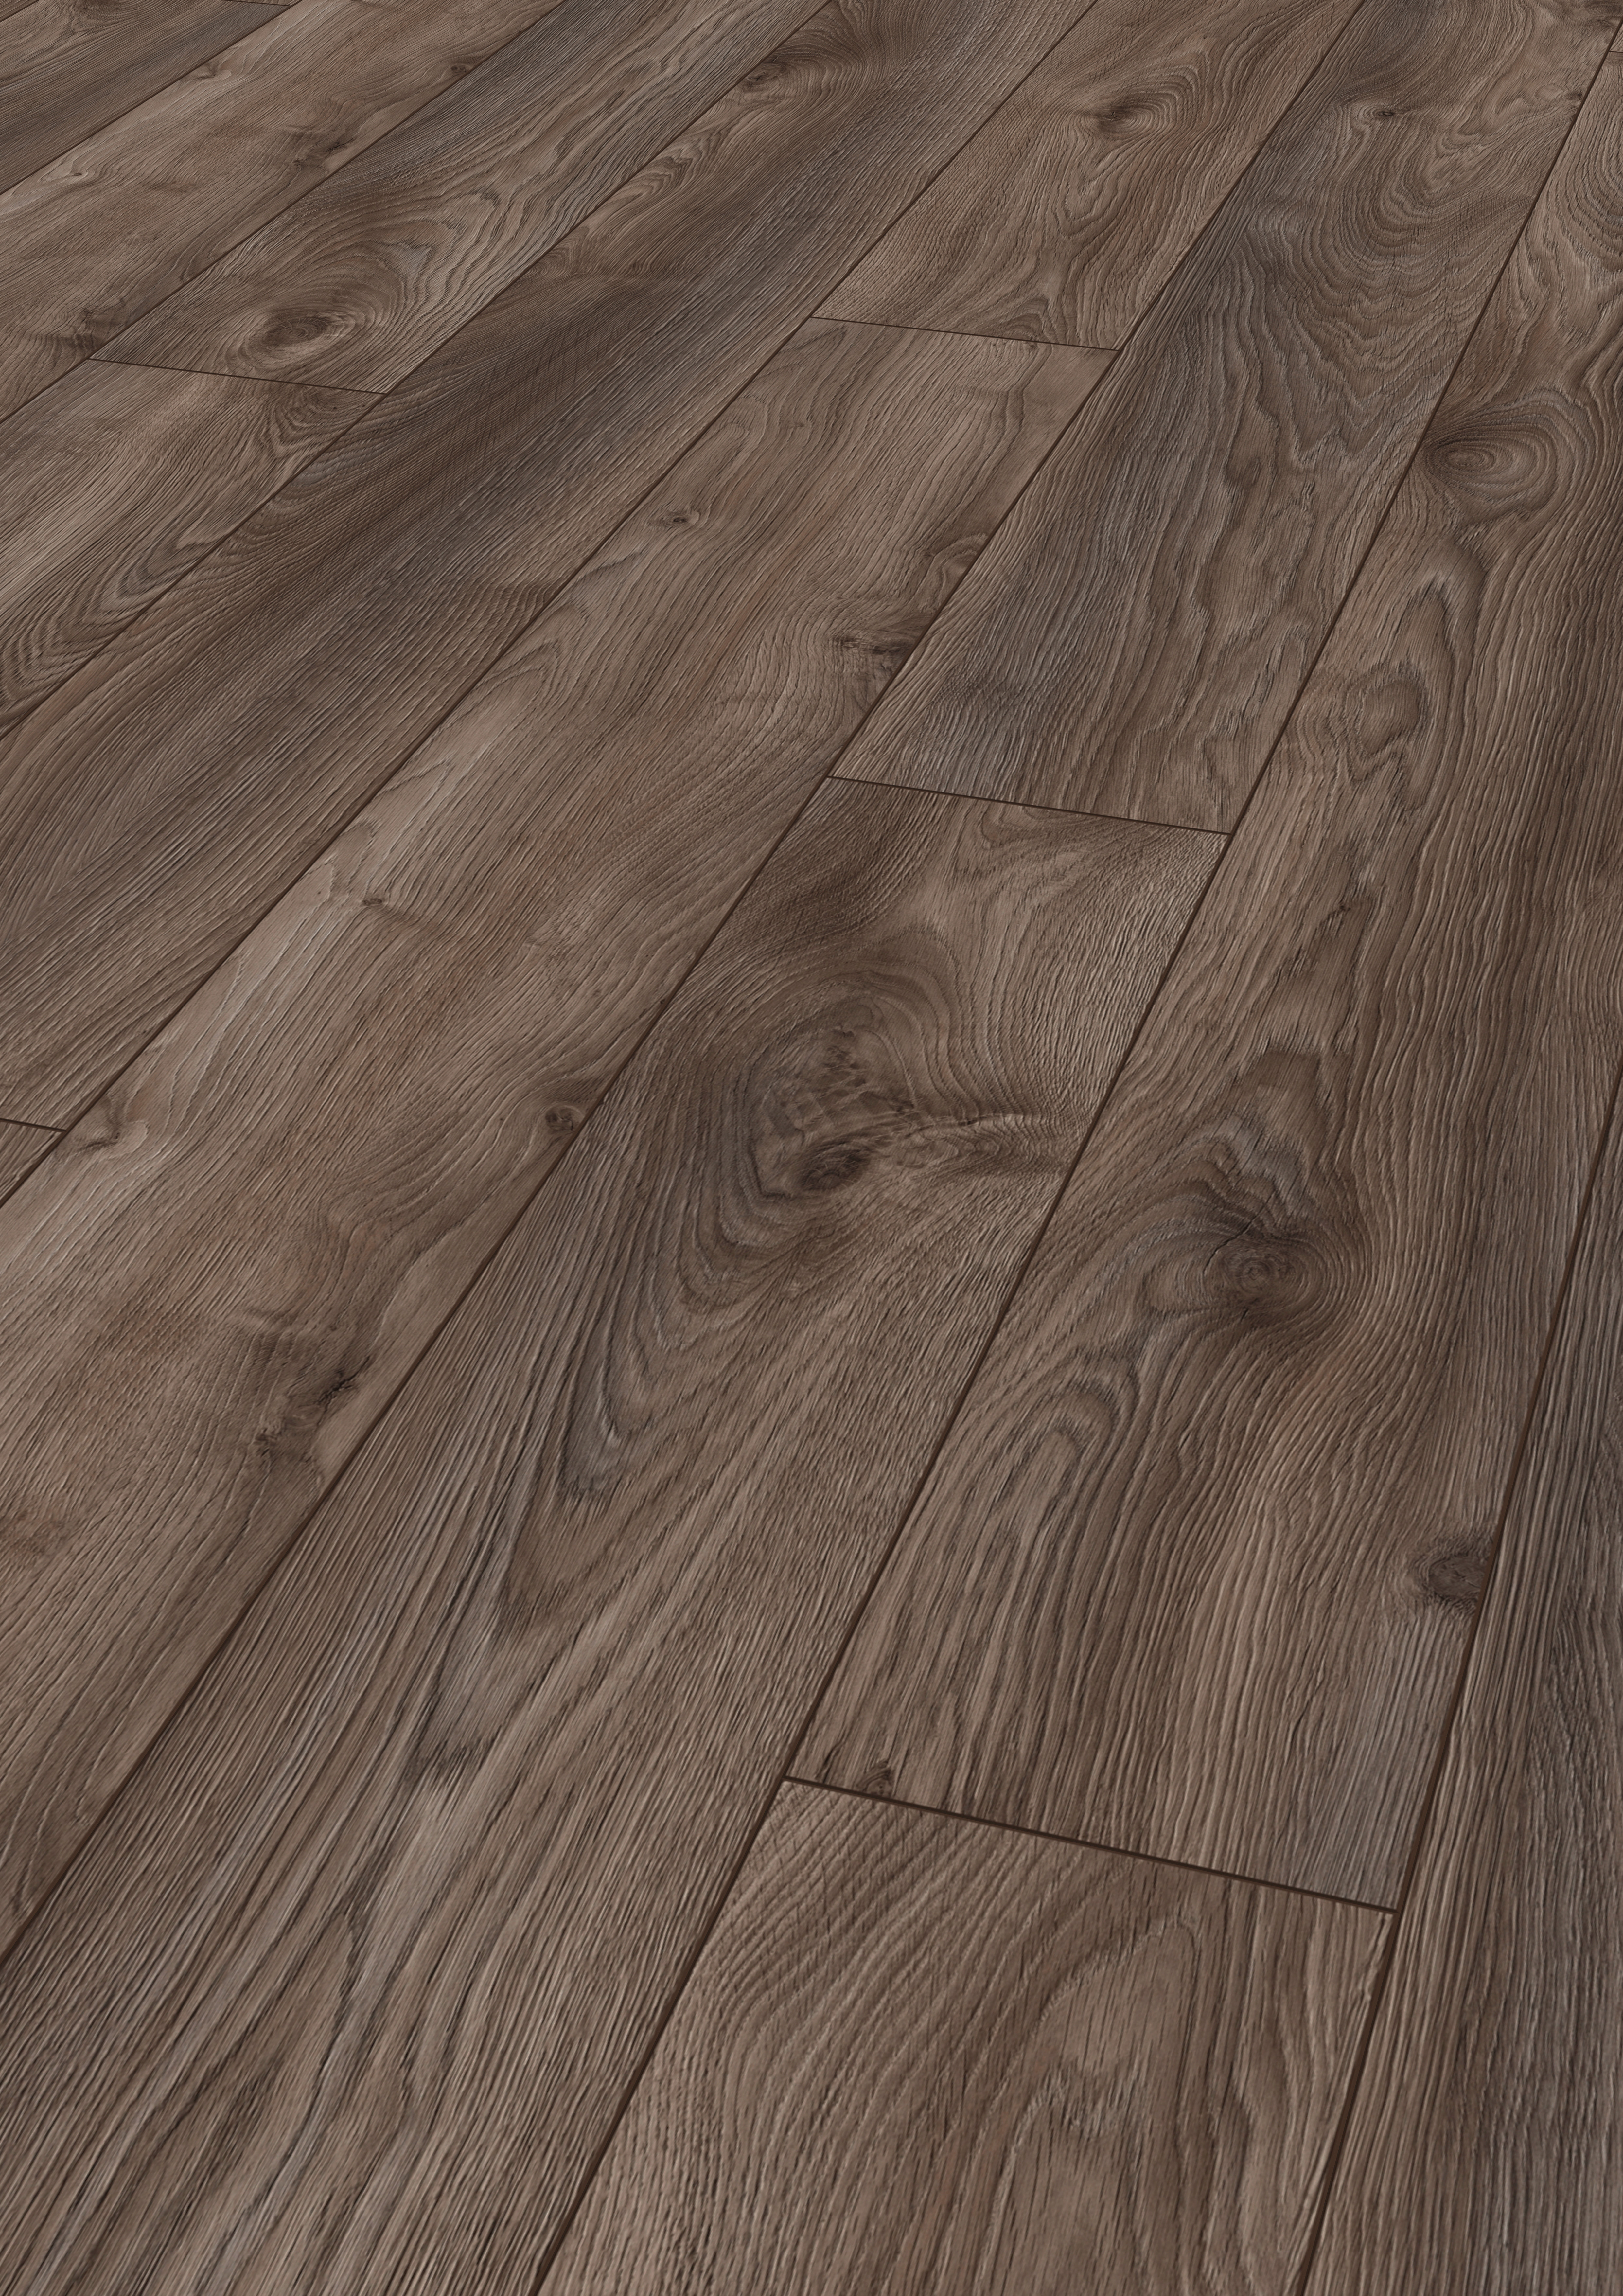 walnut hardwood flooring ottawa of mammut laminate flooring in country house plank style kronotex pertaining to download picture amp